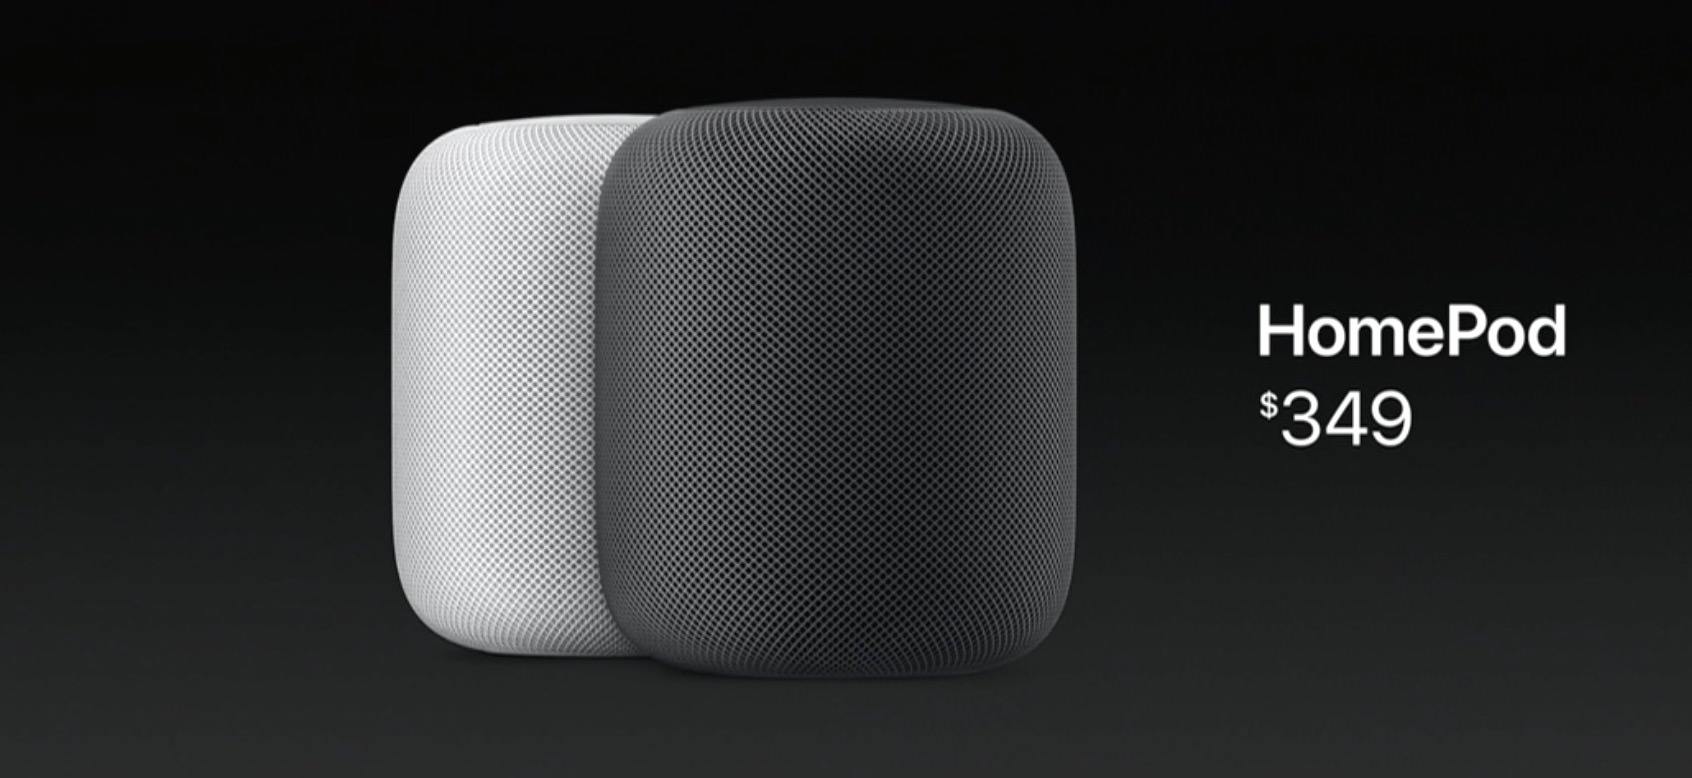 homepod-pricing